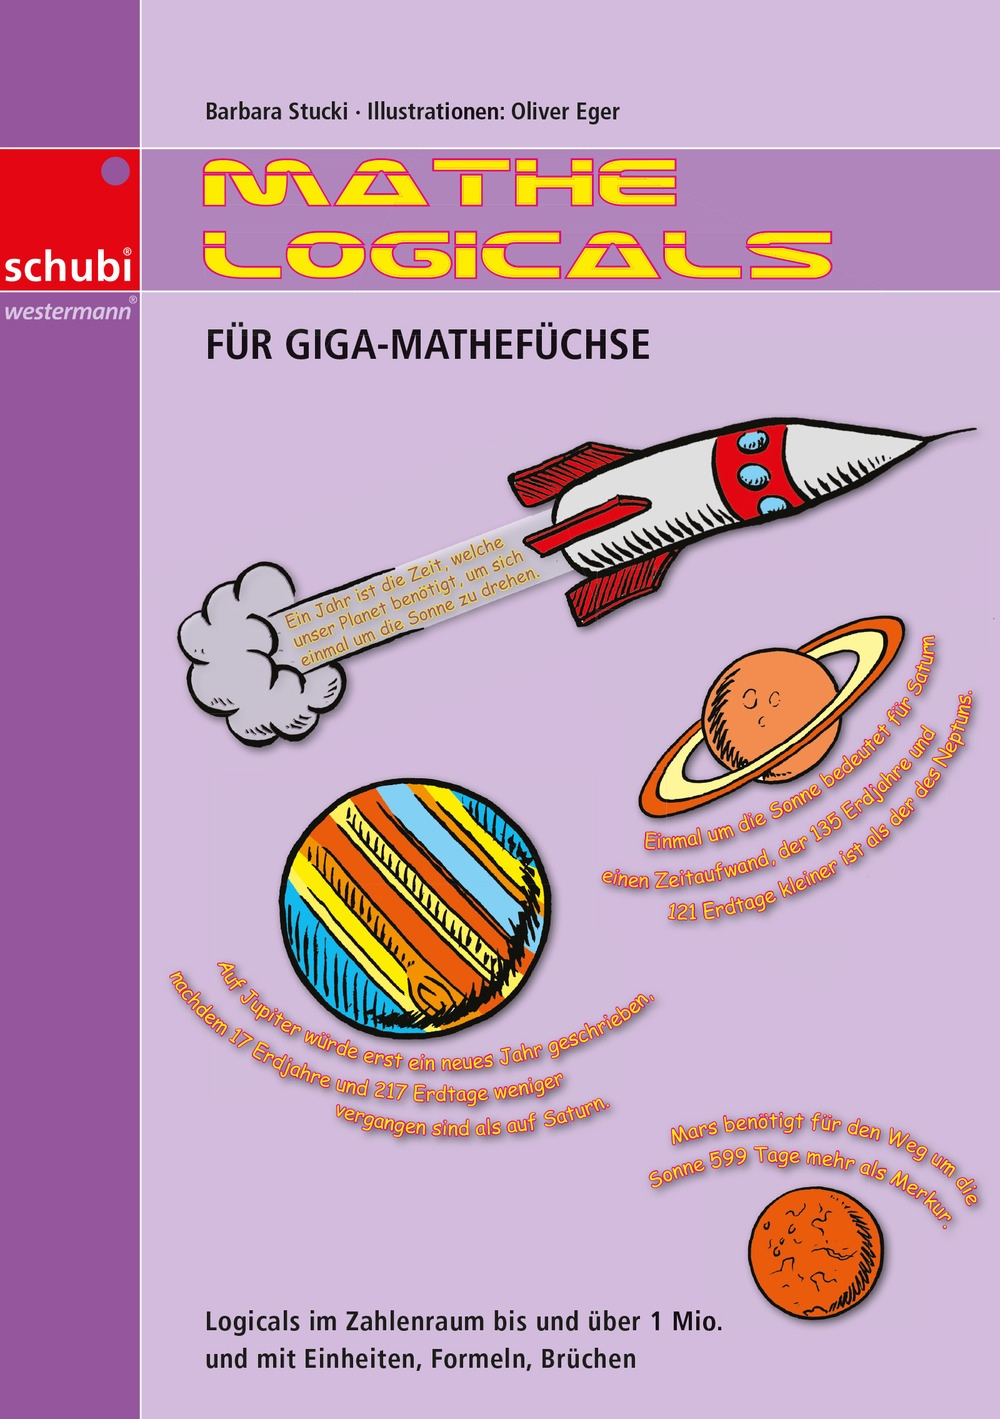 Mathe-Logicals - SCHUBI